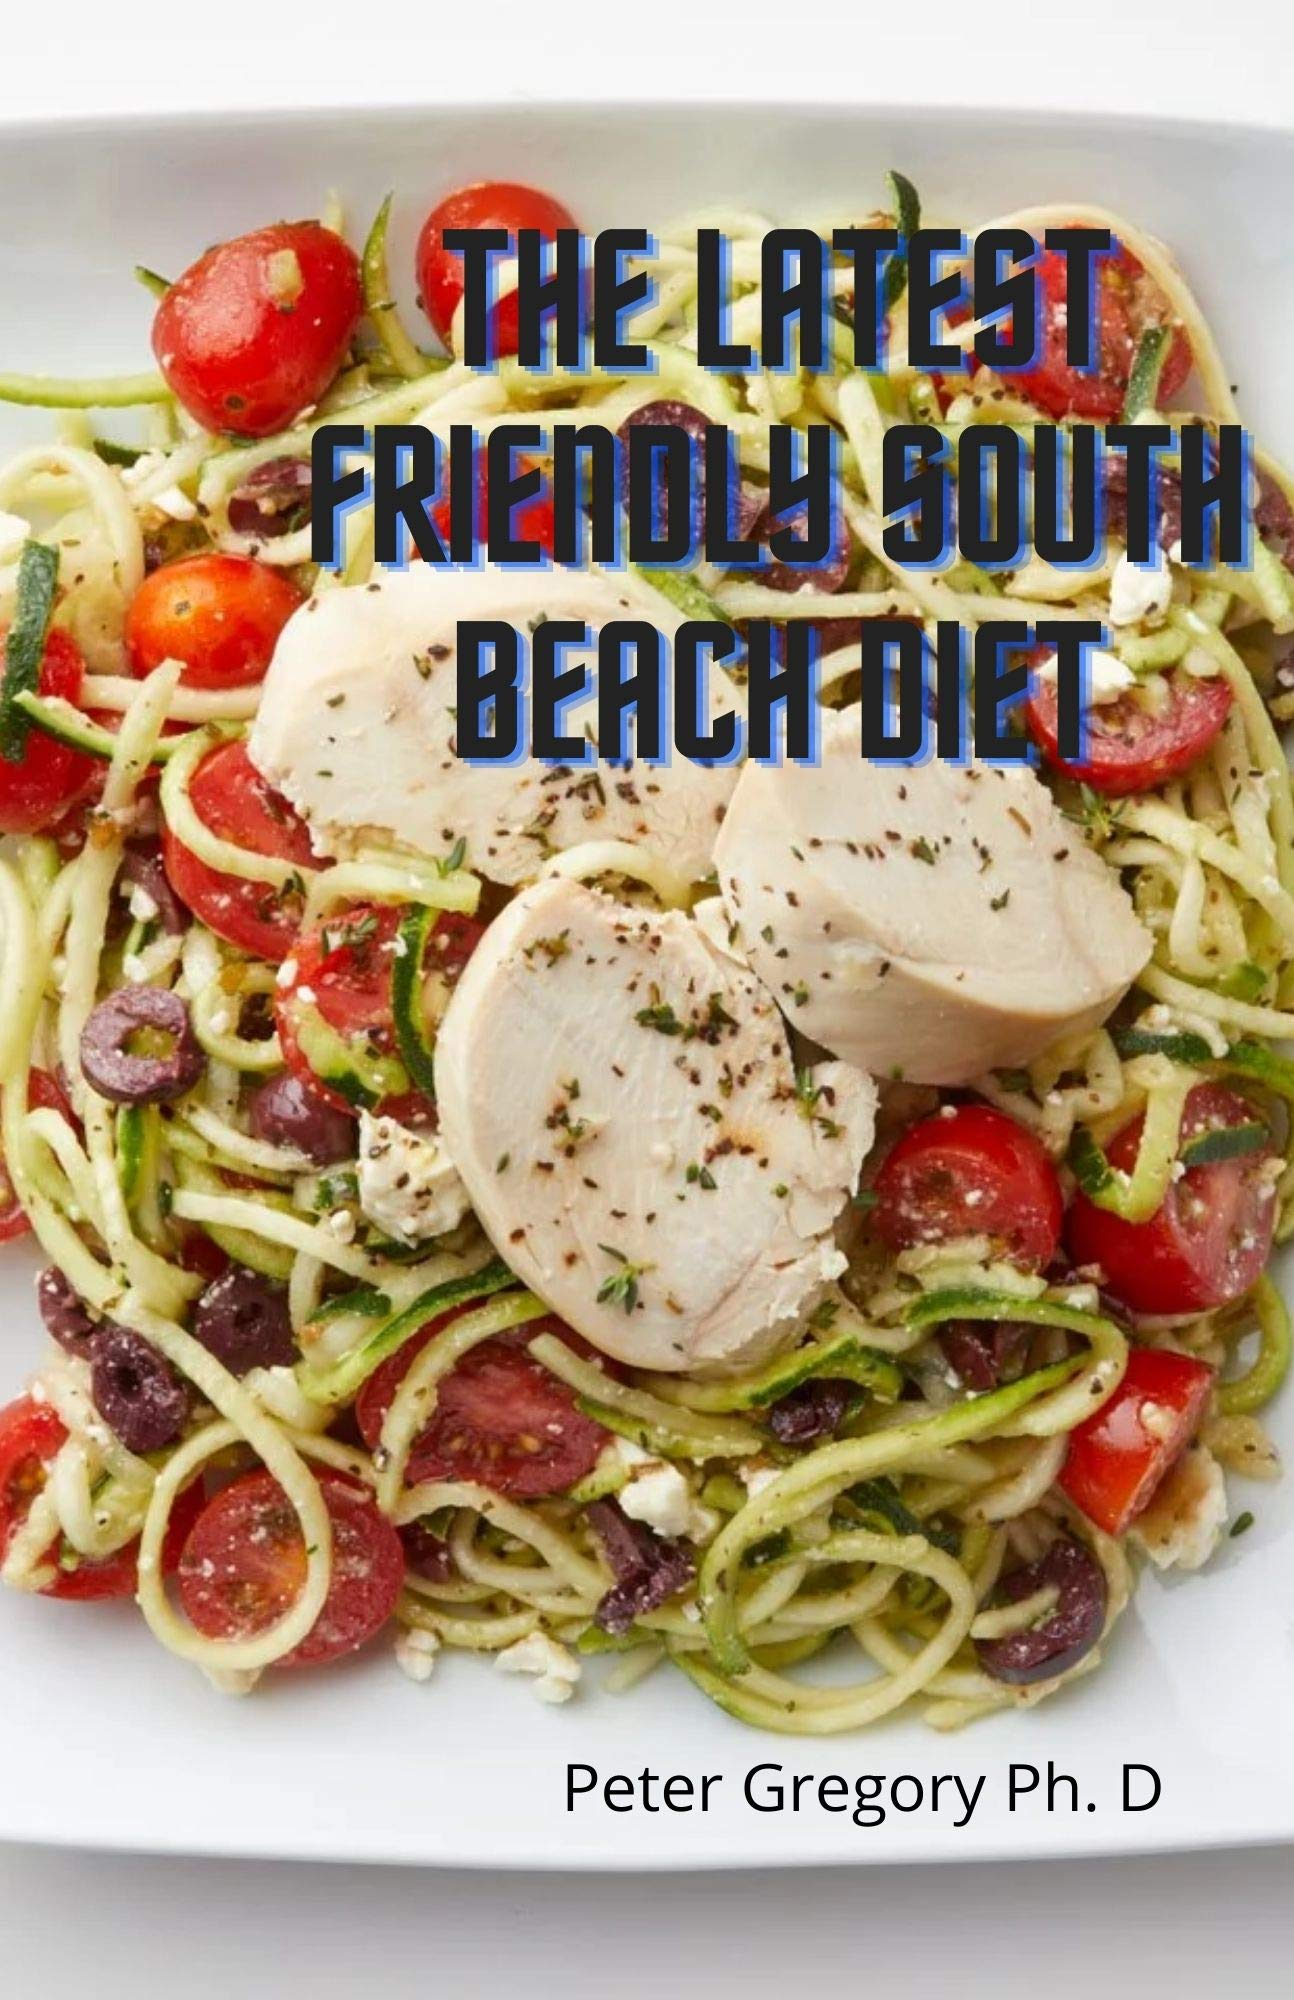 The Latest Friendly South Beach Diet: The Complete Guide To South Beach , Low Carbs Diet Recipes For All Your Favorite Food